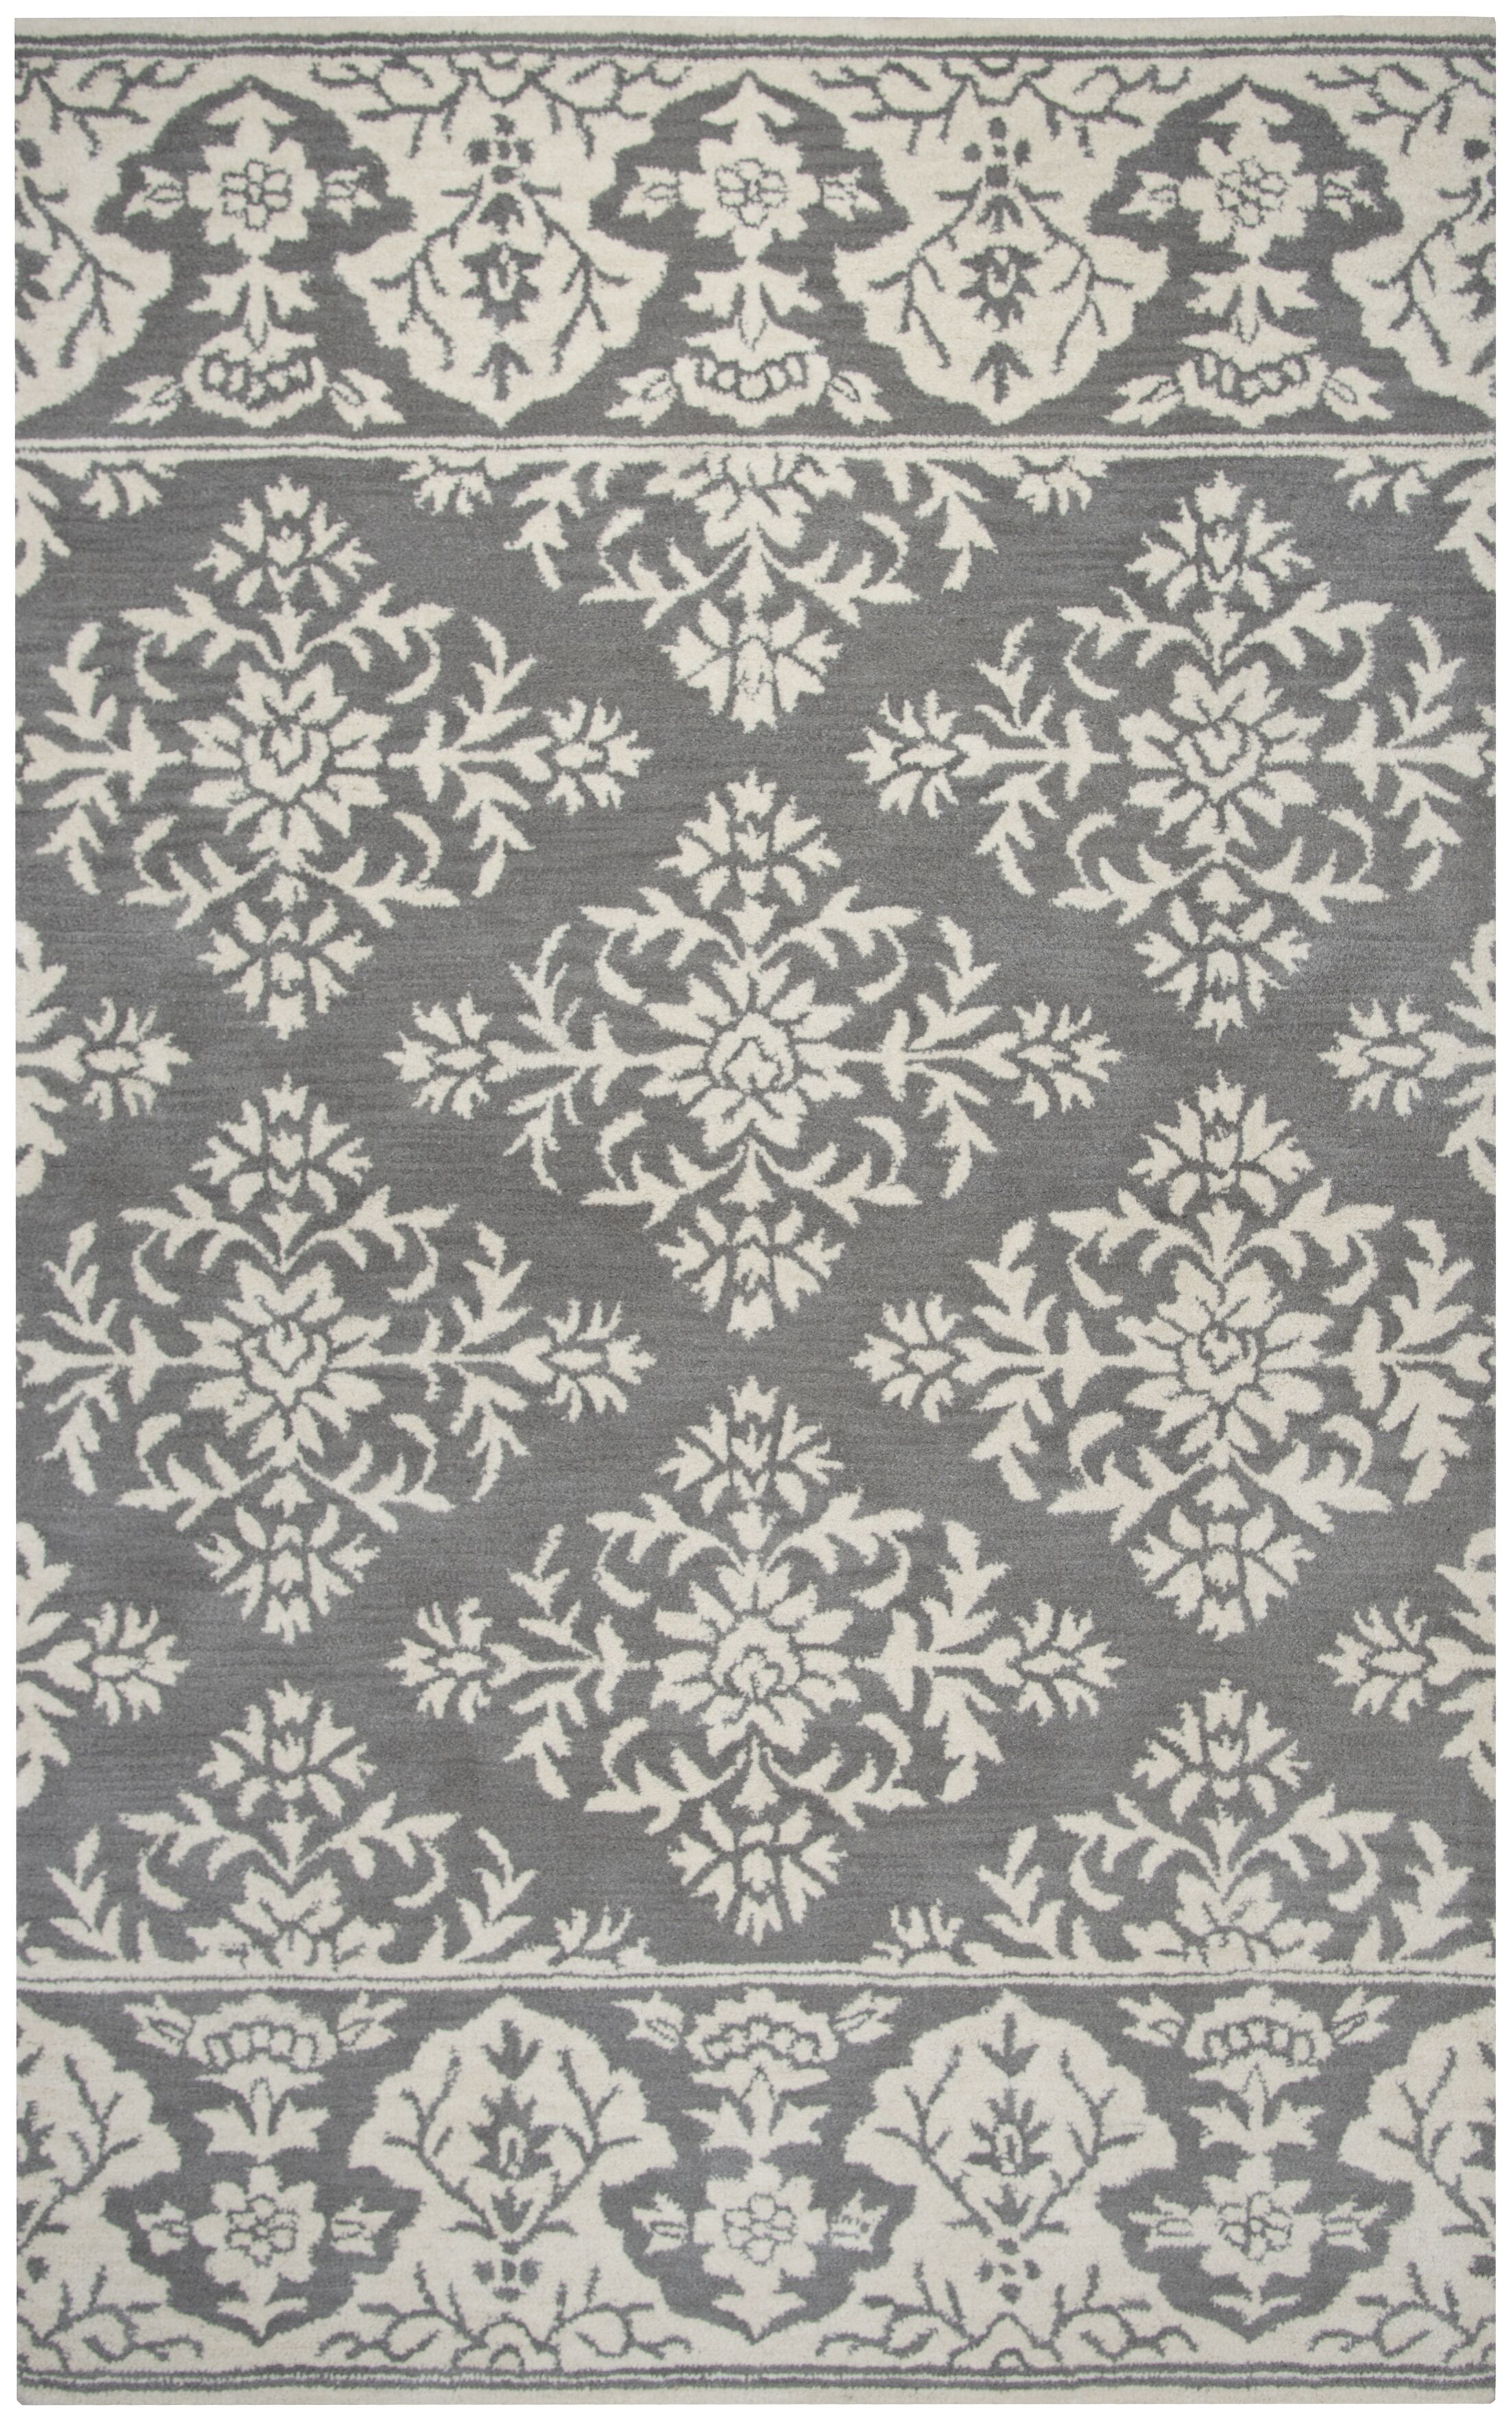 Hulme Hand-Tufted Wool Gray Area Rug Rug Size: Rectangle 9' x 12'